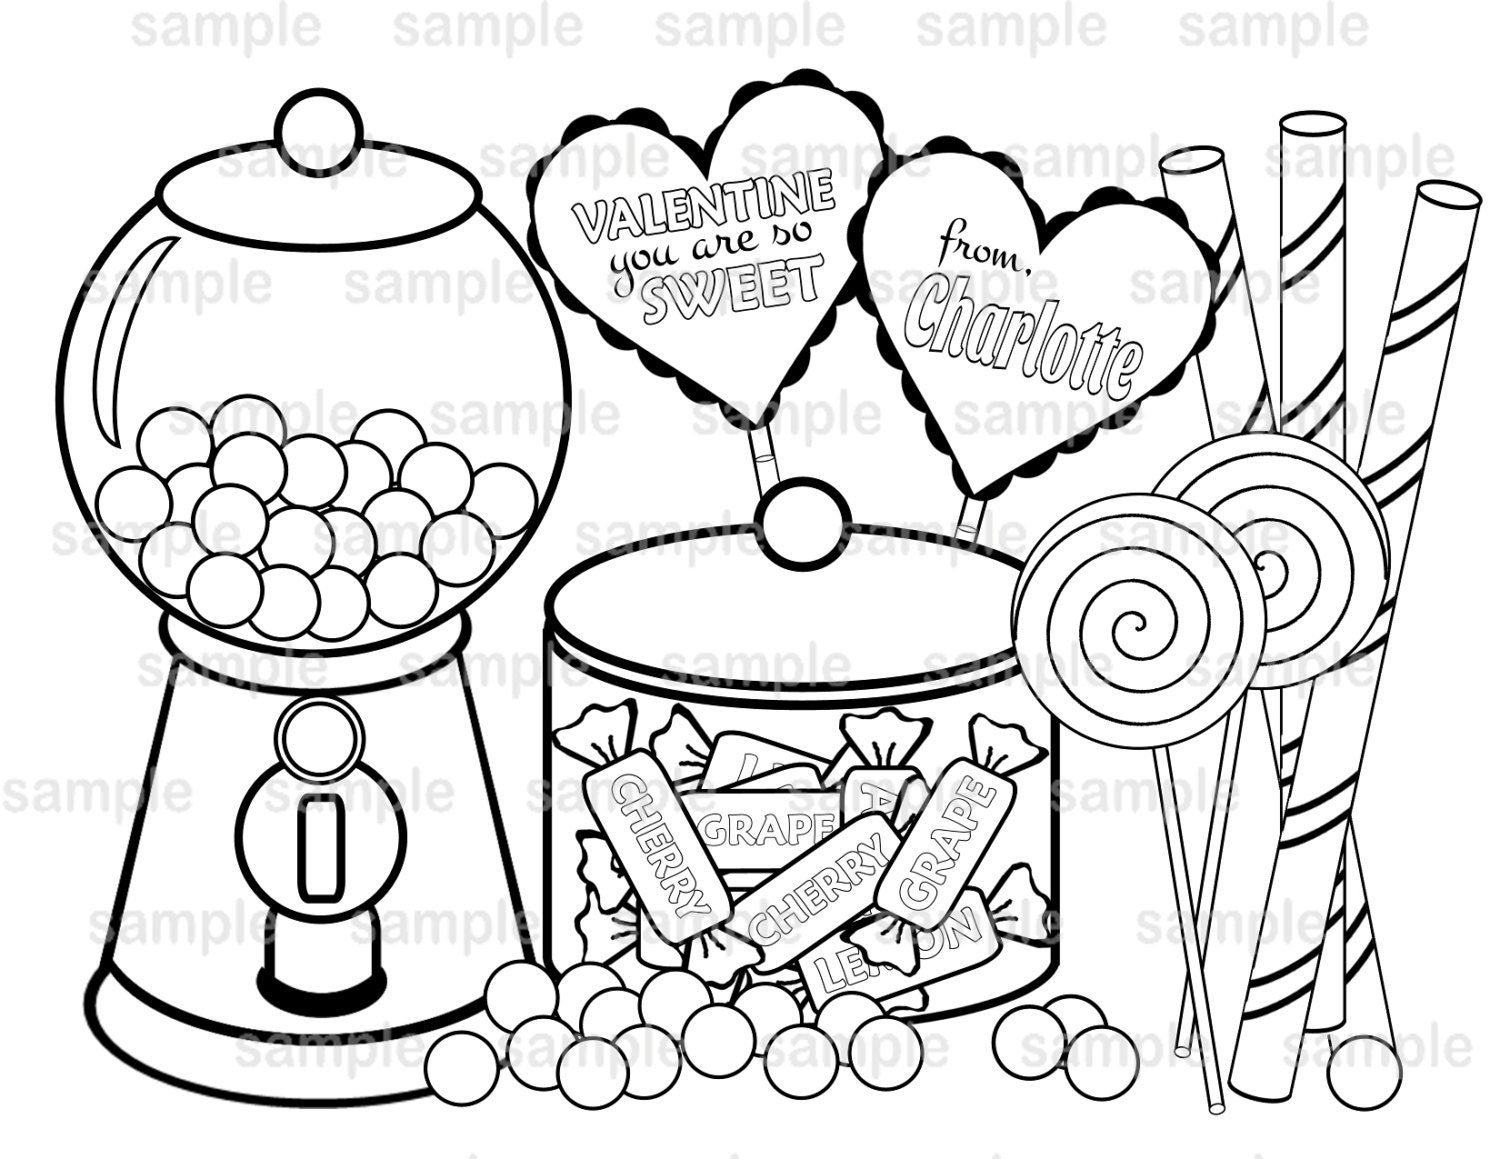 Valentines Coloring Pages Pdf : Personalized printable valentine s day sweet shopped